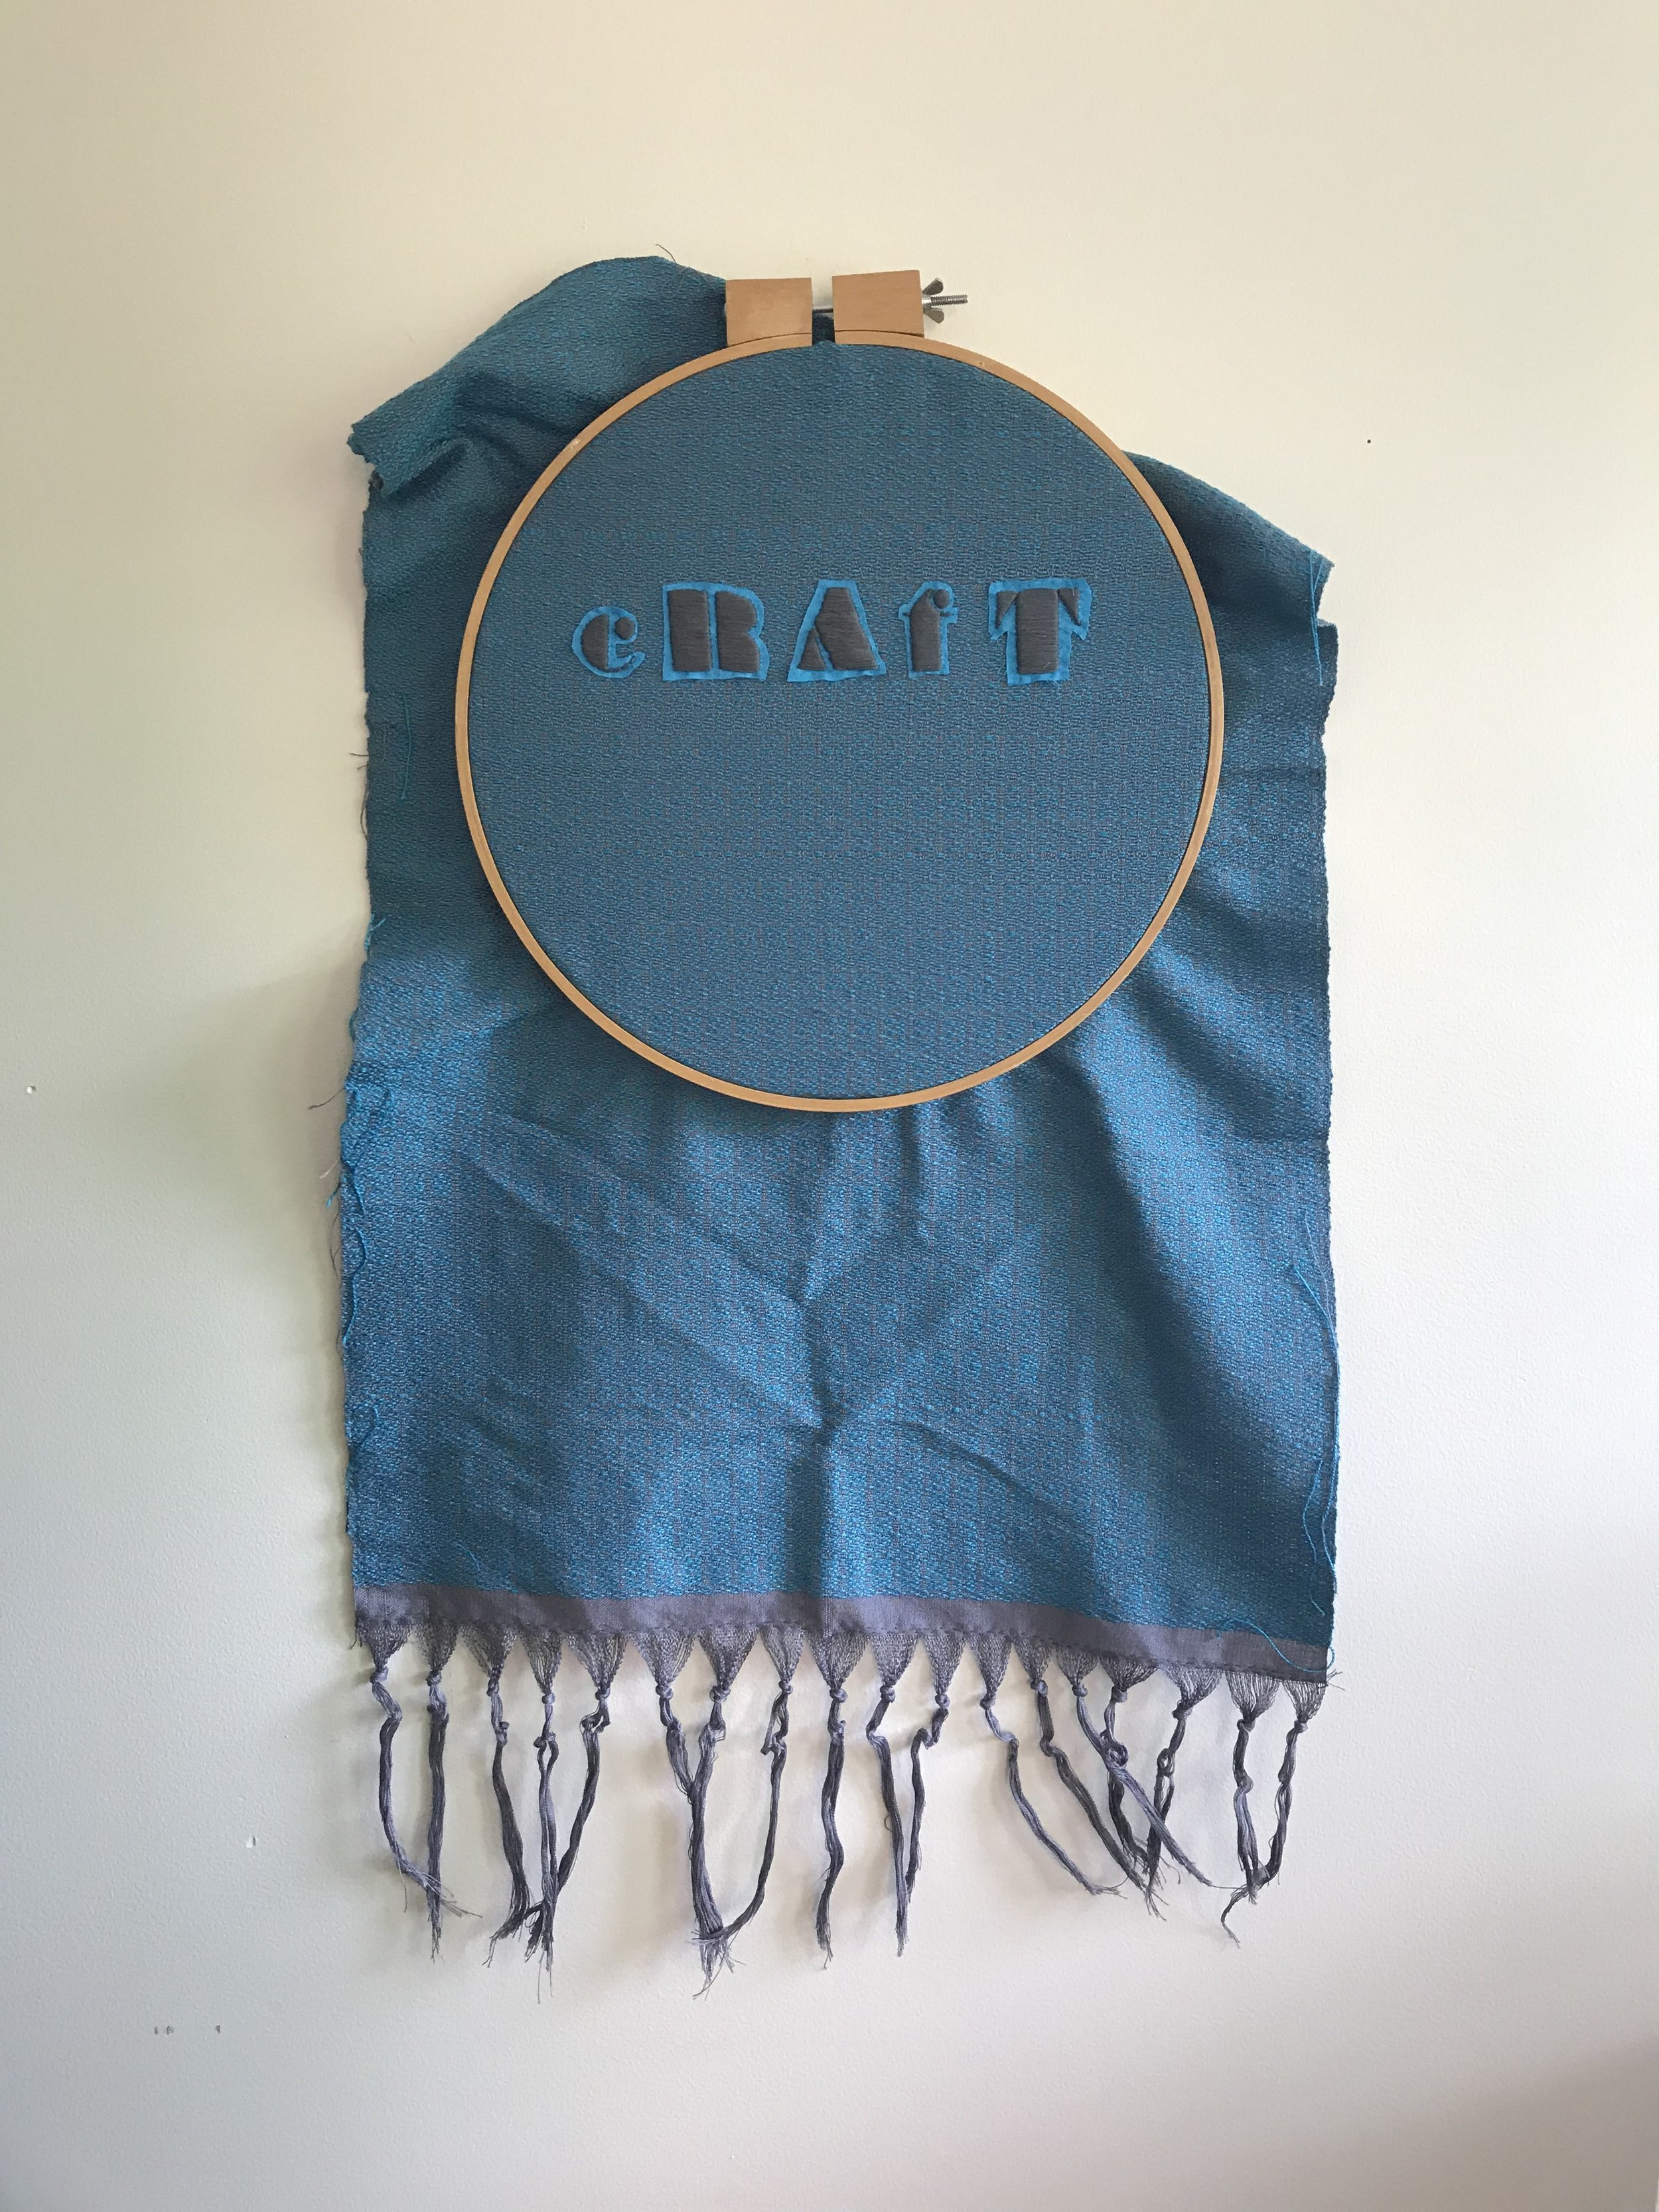 """SHANNON DOWNEY - """"cRAfT"""", handwoven tapestry with hand done stumpwork embroideryapproximately 20"""" x 36""""$2,500"""